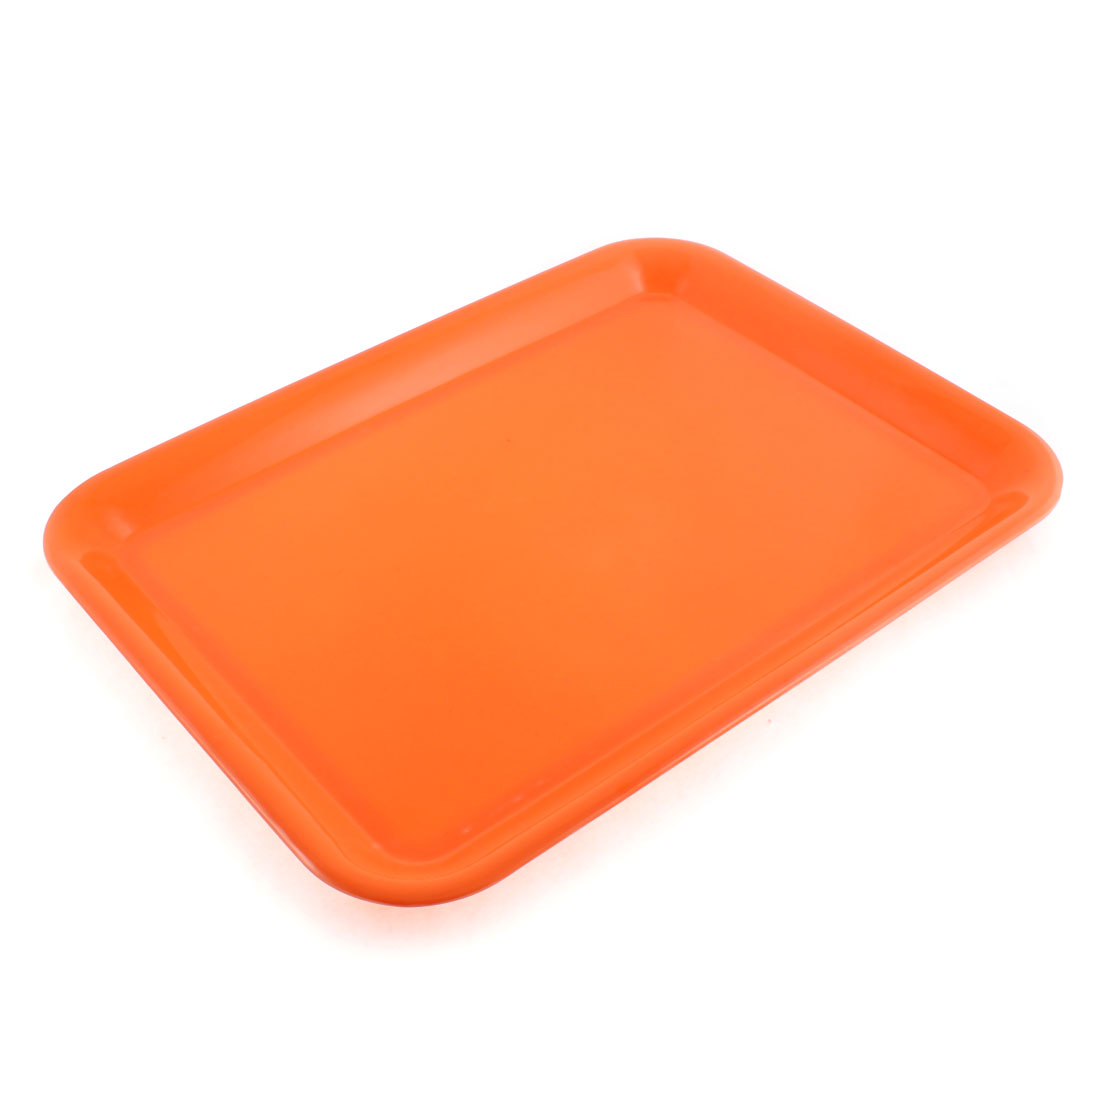 "Plastic Rectangle Shaped Food Cake Serving Tray Orange 15"" Length"